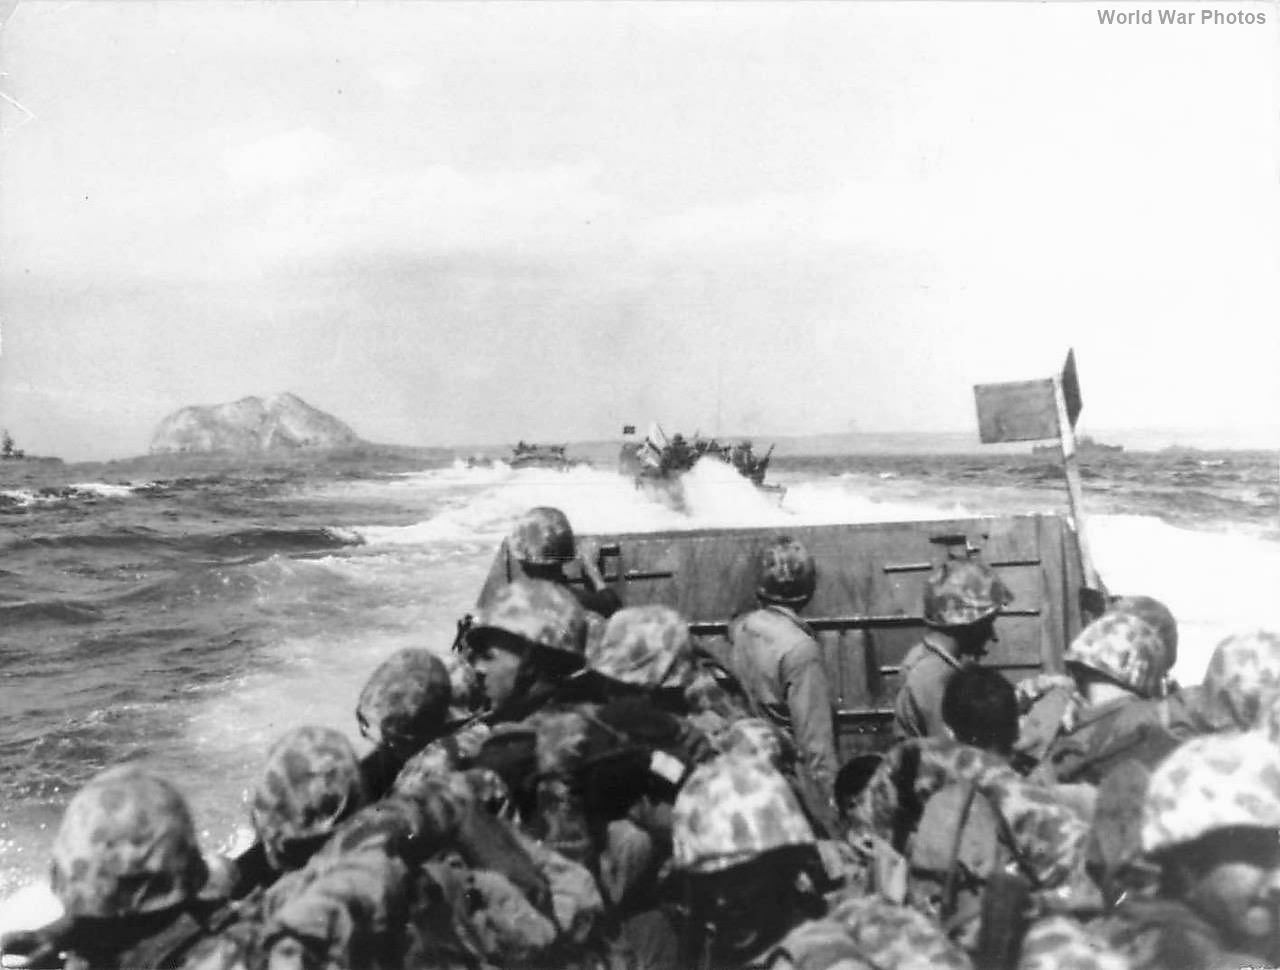 LVTs jam-packed with 4th Marine Division troops